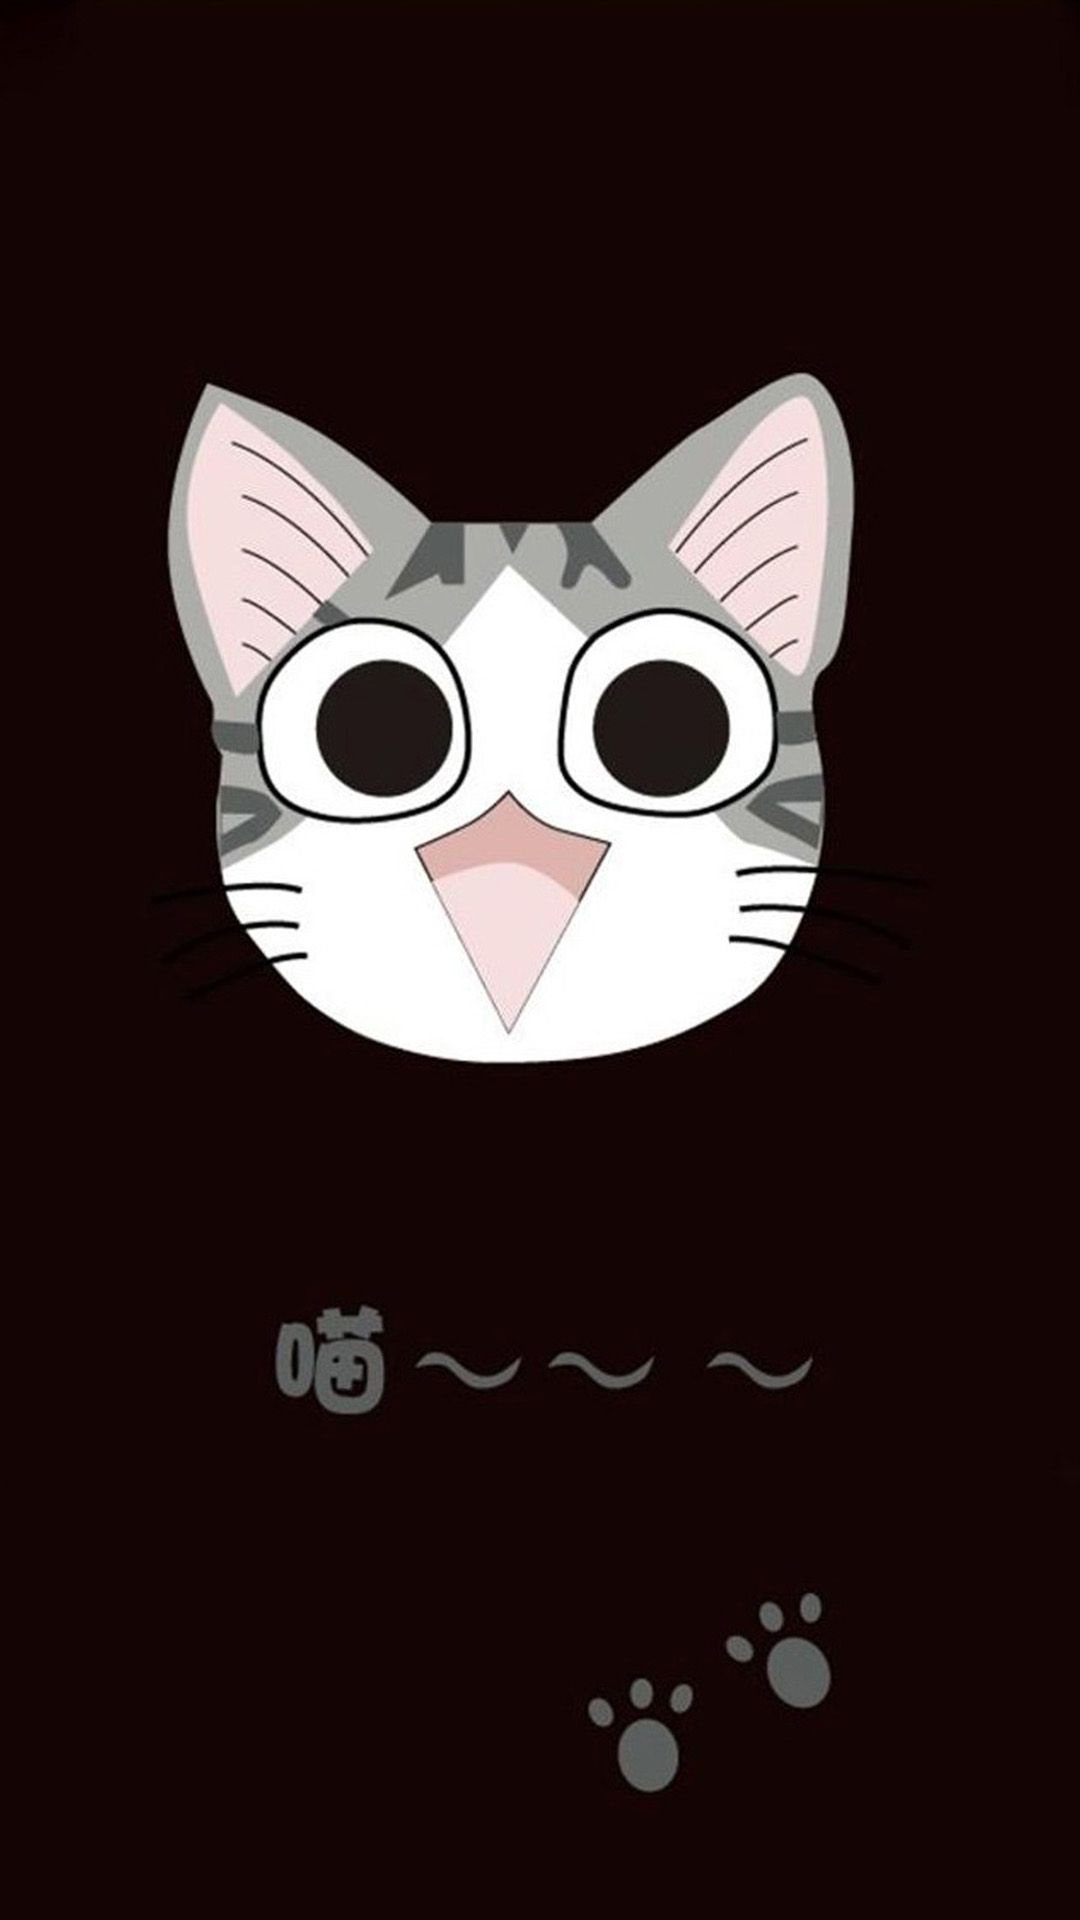 Pink Cute Girly Cat Melody Iphone Wallpaper 2021 Live Wallpaper Hd Cute Disney Wallpaper Cute Cartoon Wallpapers Wallpaper Iphone Cute